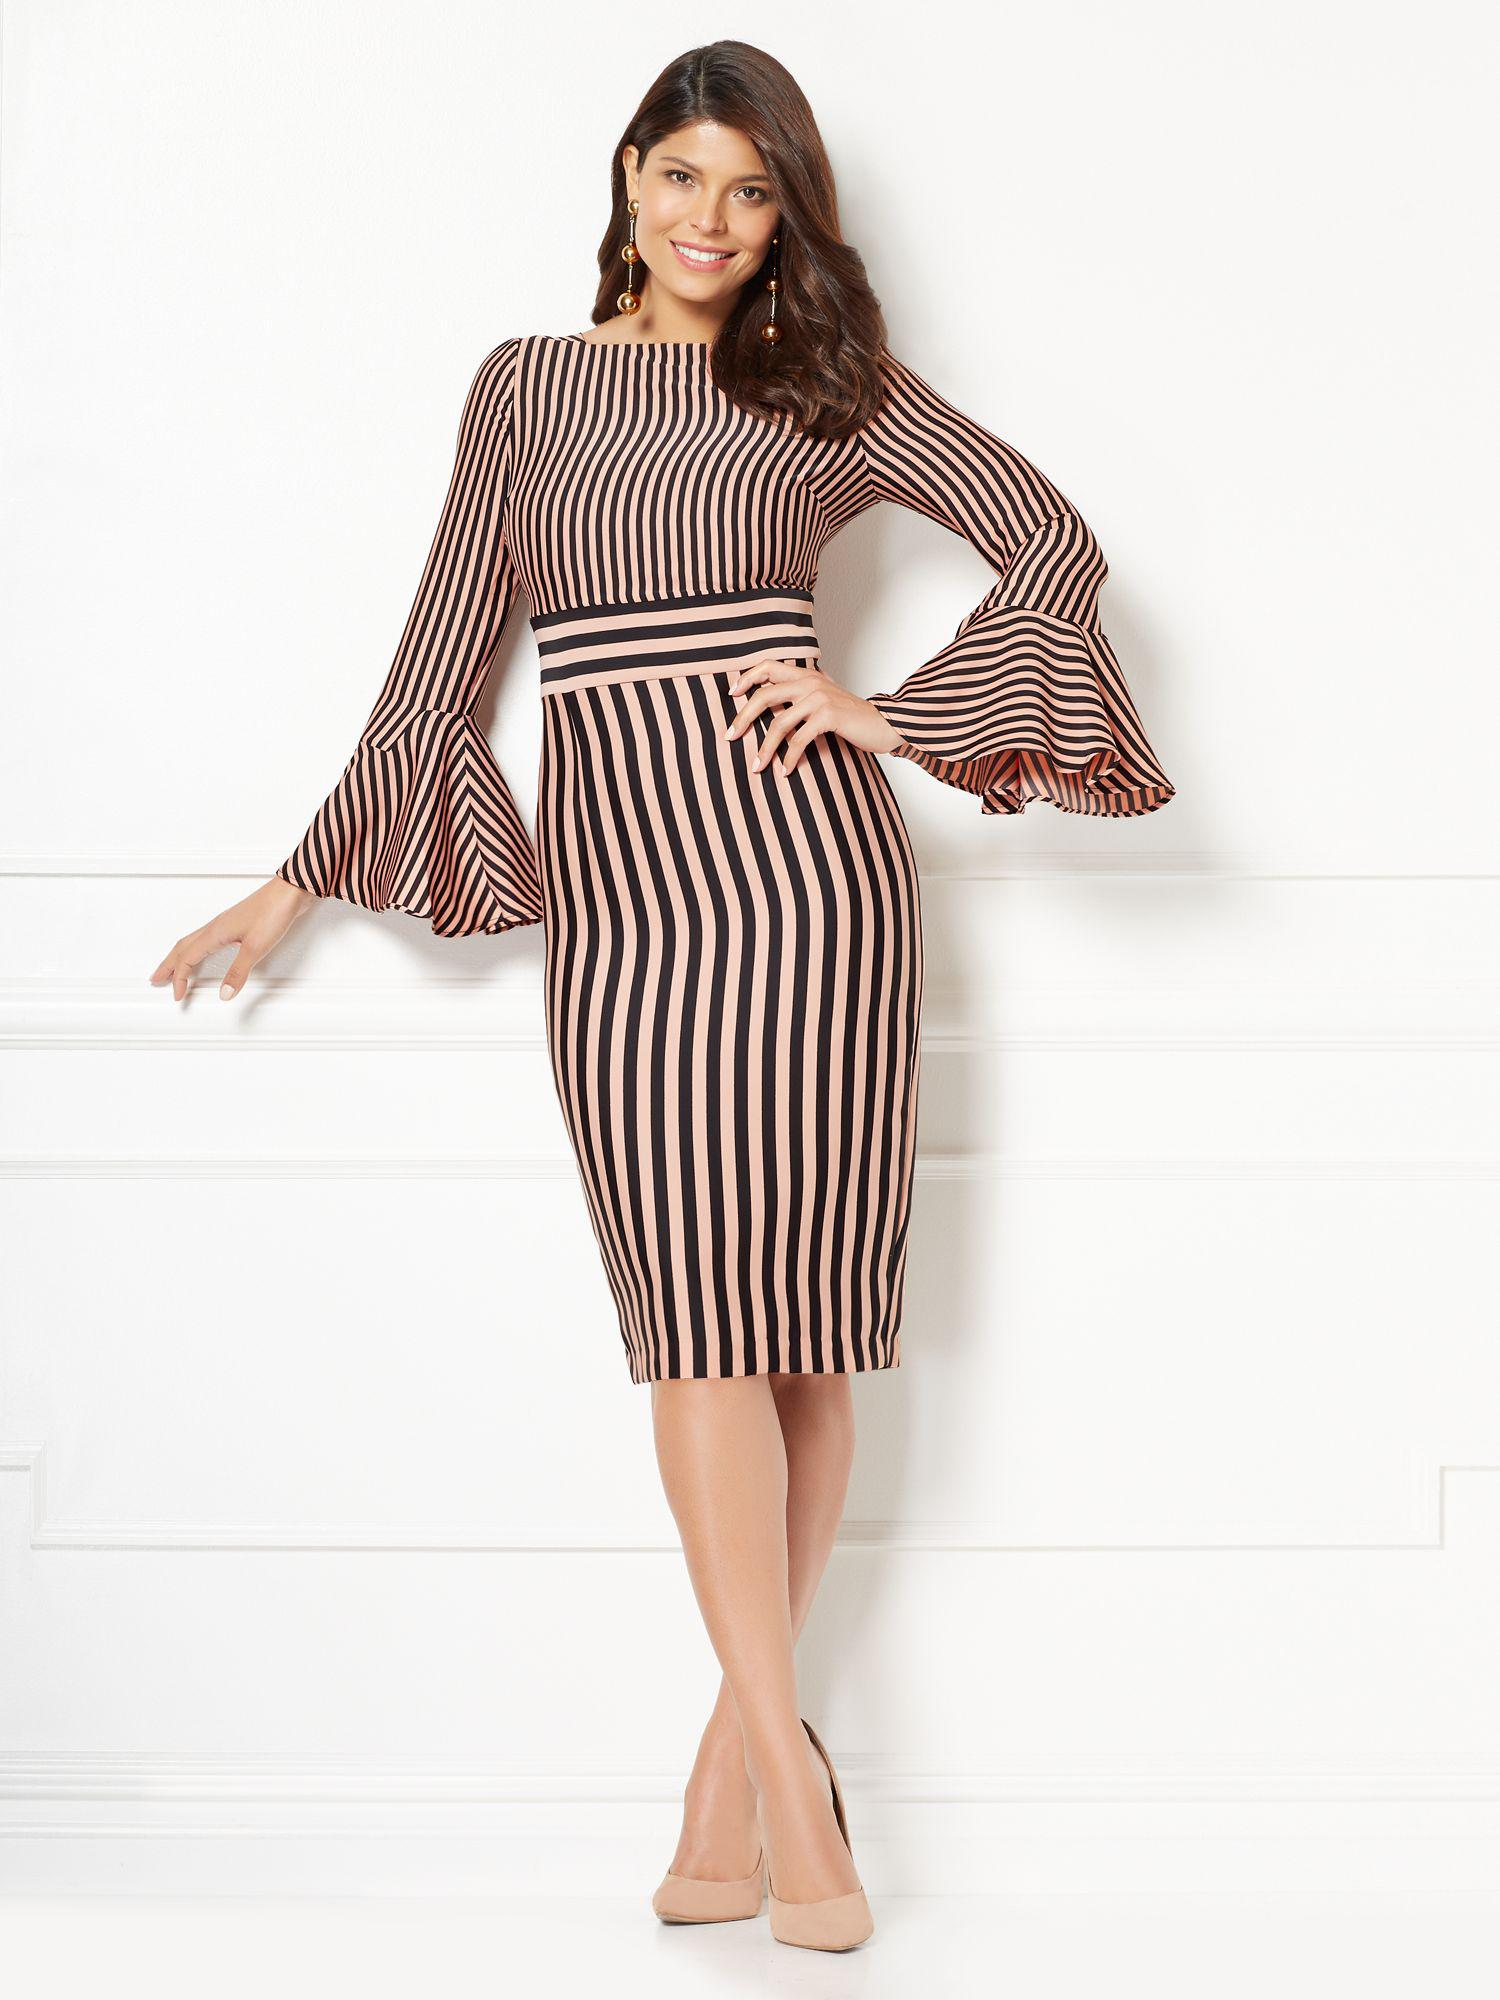 db0874ee0c1 New York   Company Eva Mendes Collection - Amal Sheath Dress in ...